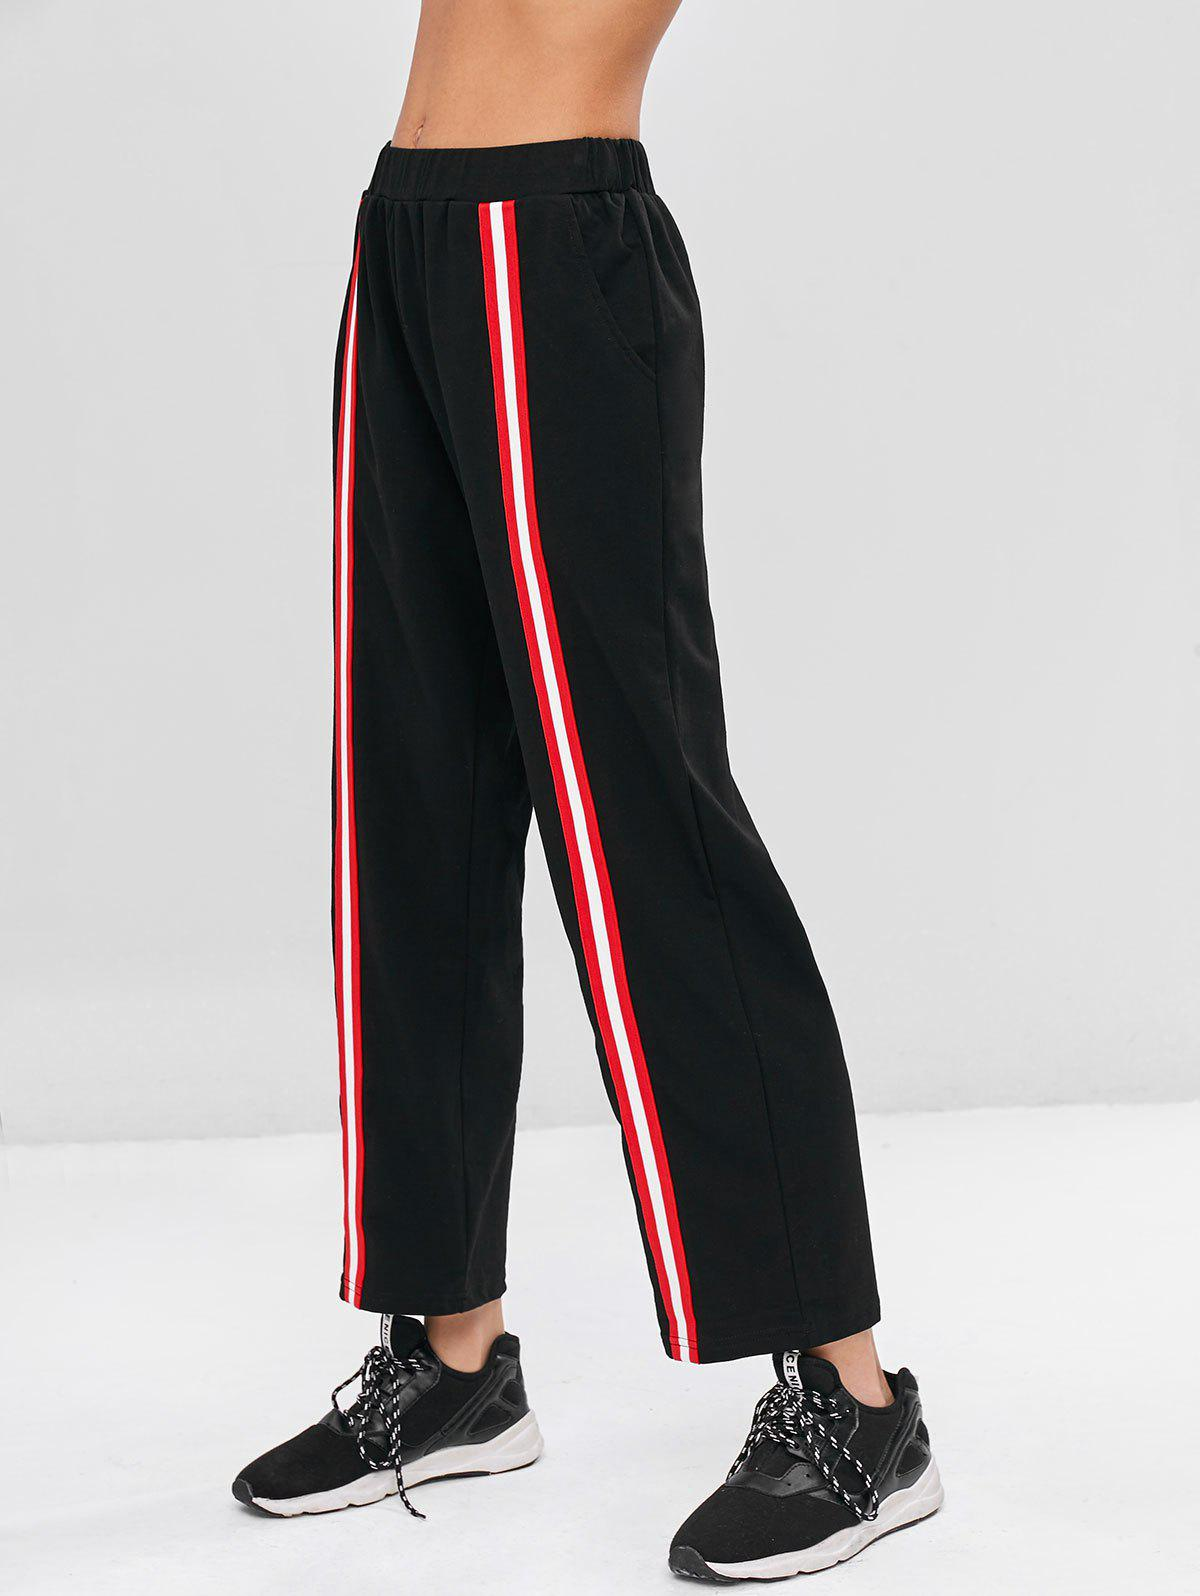 High Waist Striped Patched Pants